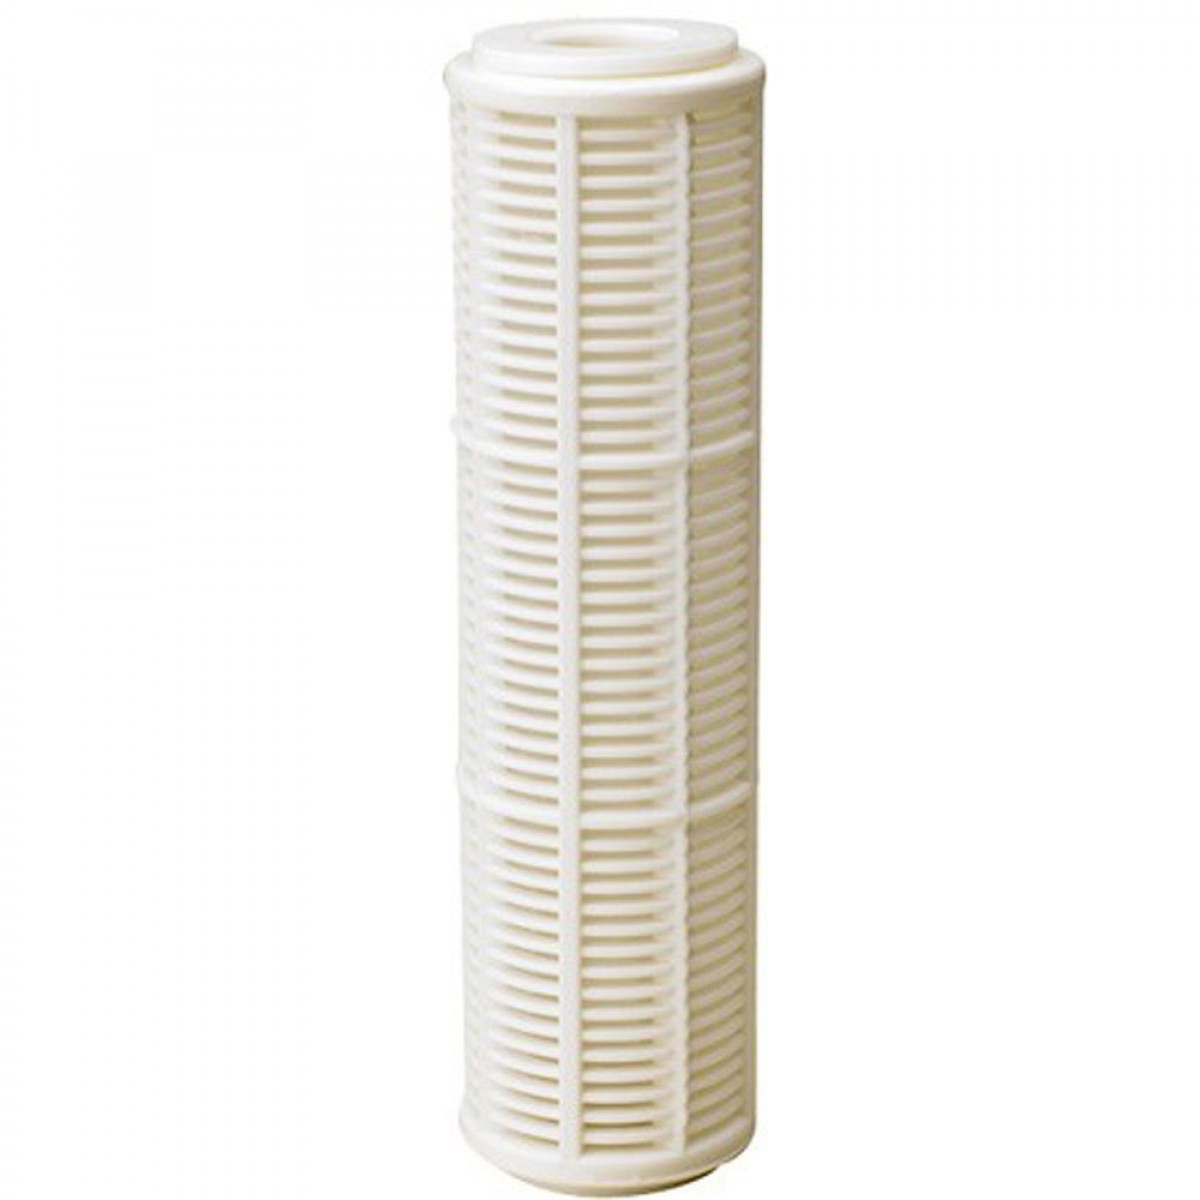 Rs19 Omnifilter Water Filter Cartridge